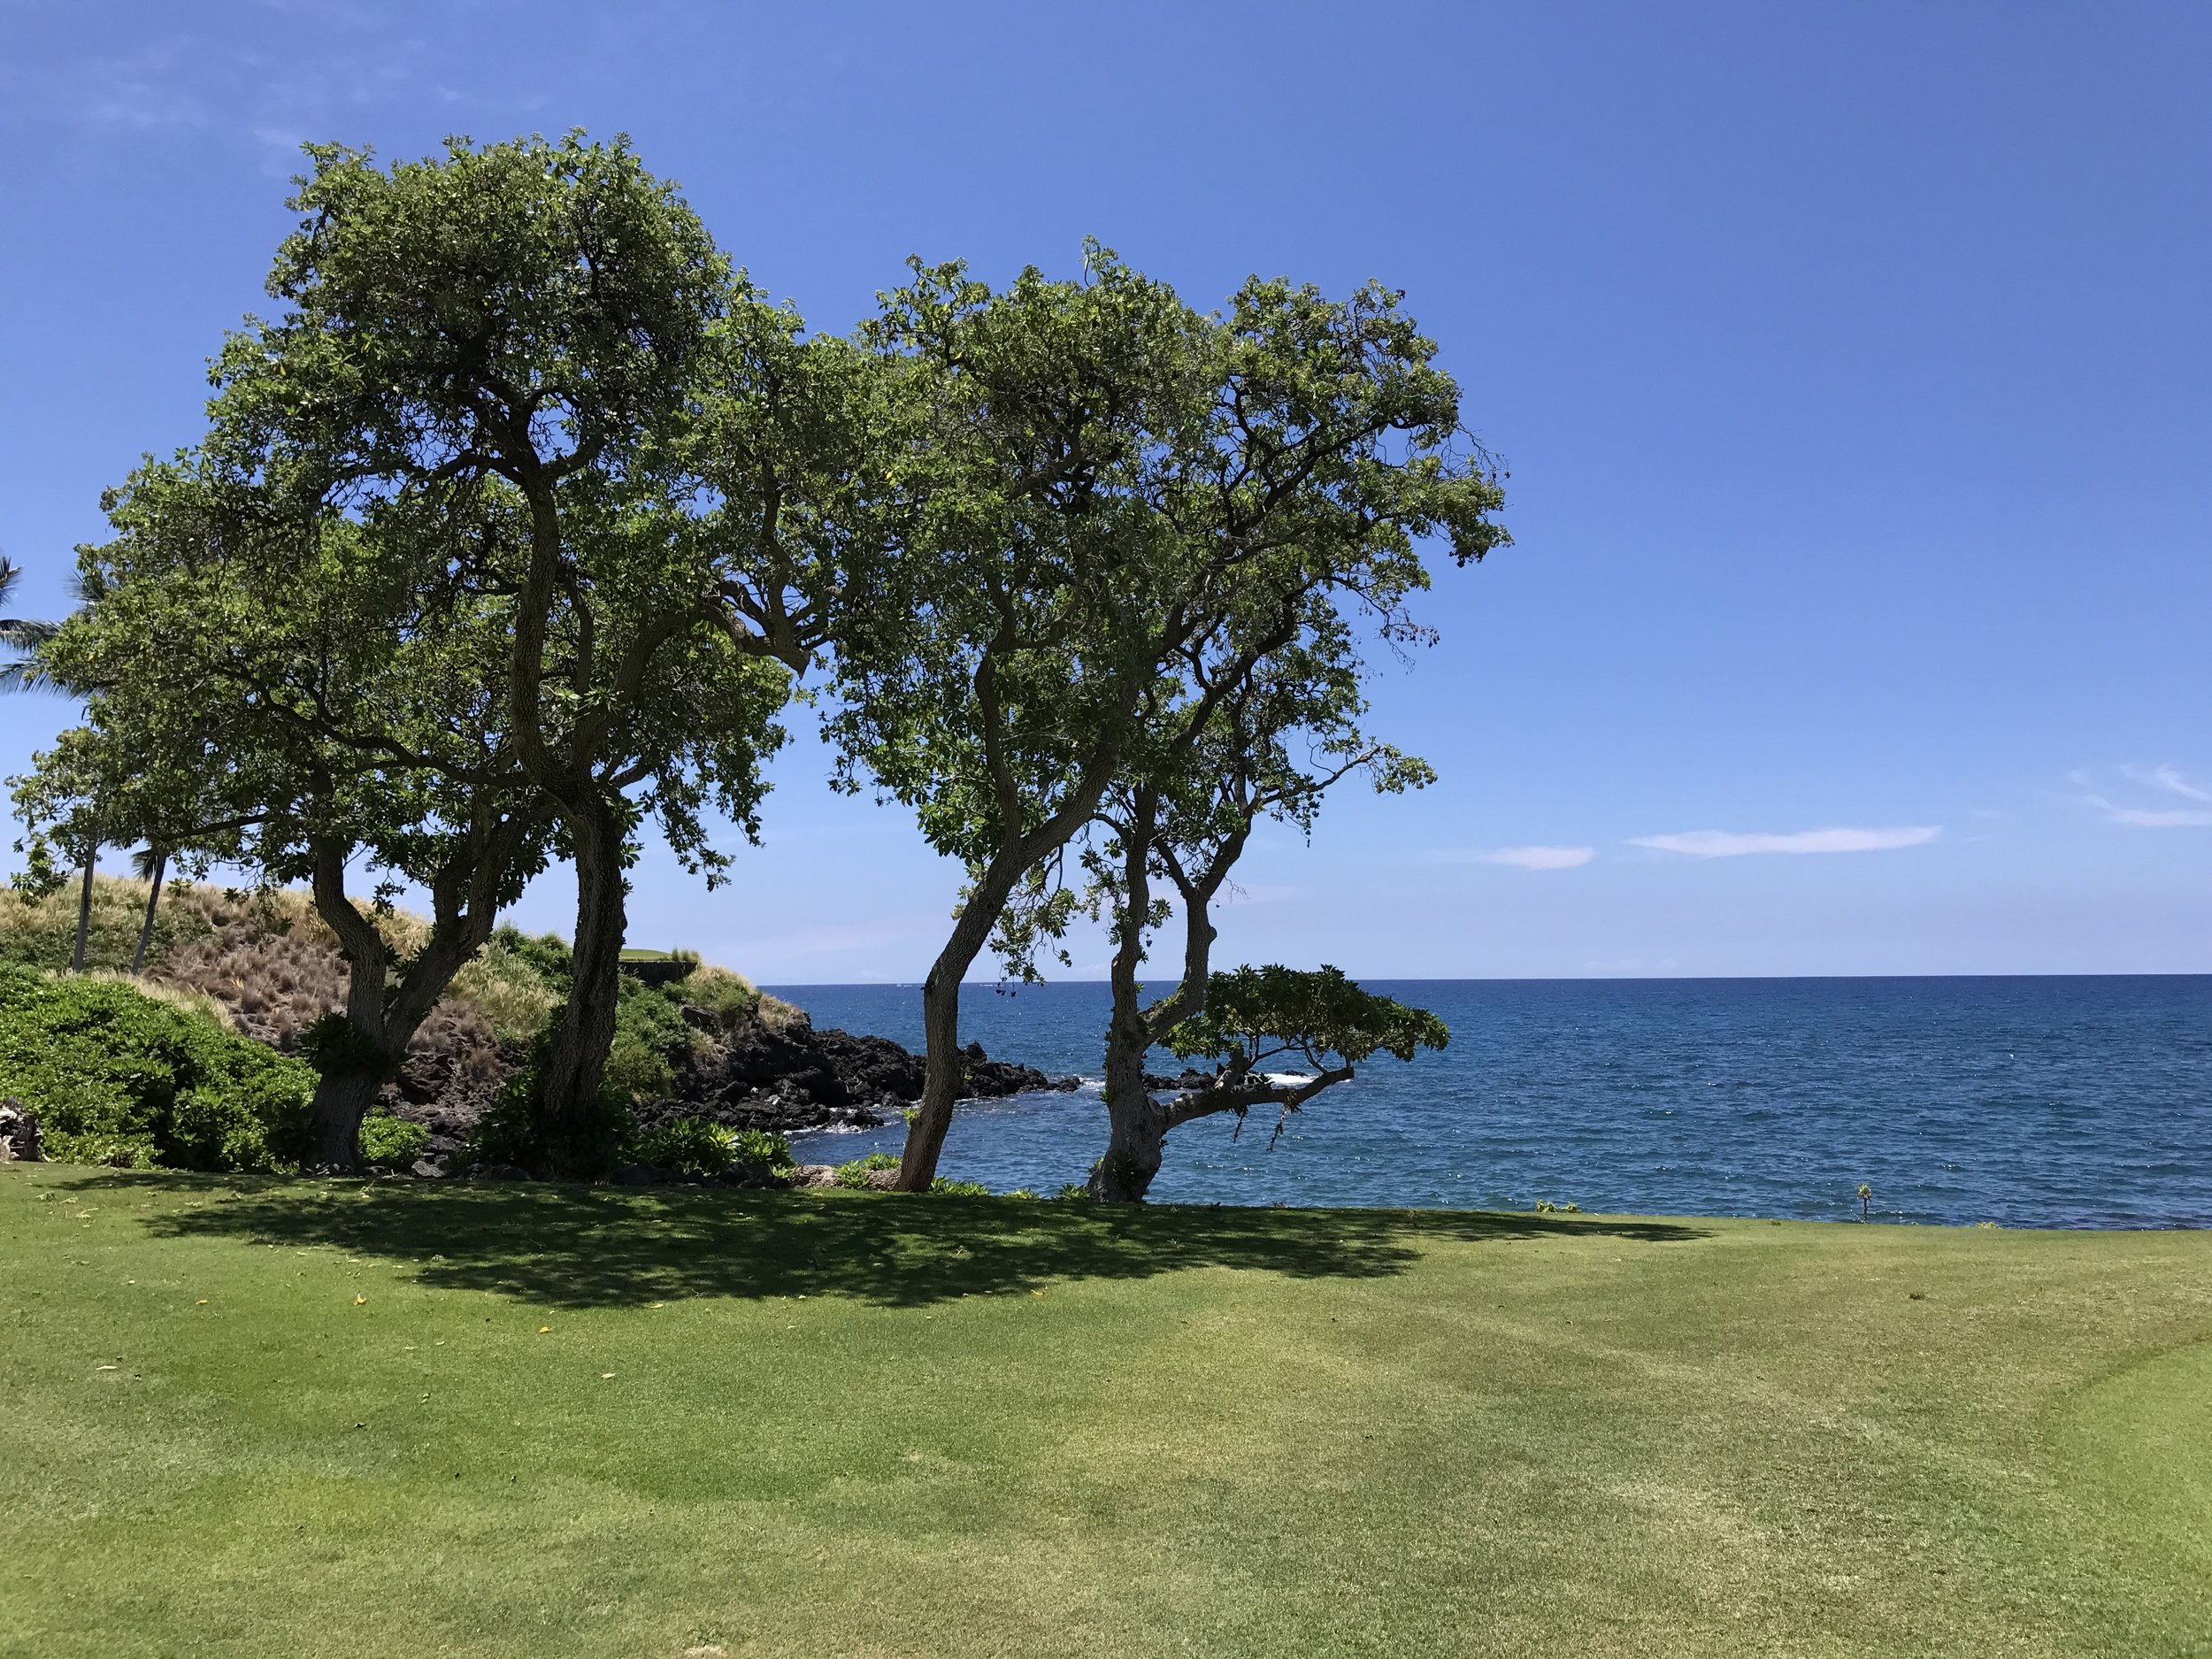 Maune Kea Golf Course